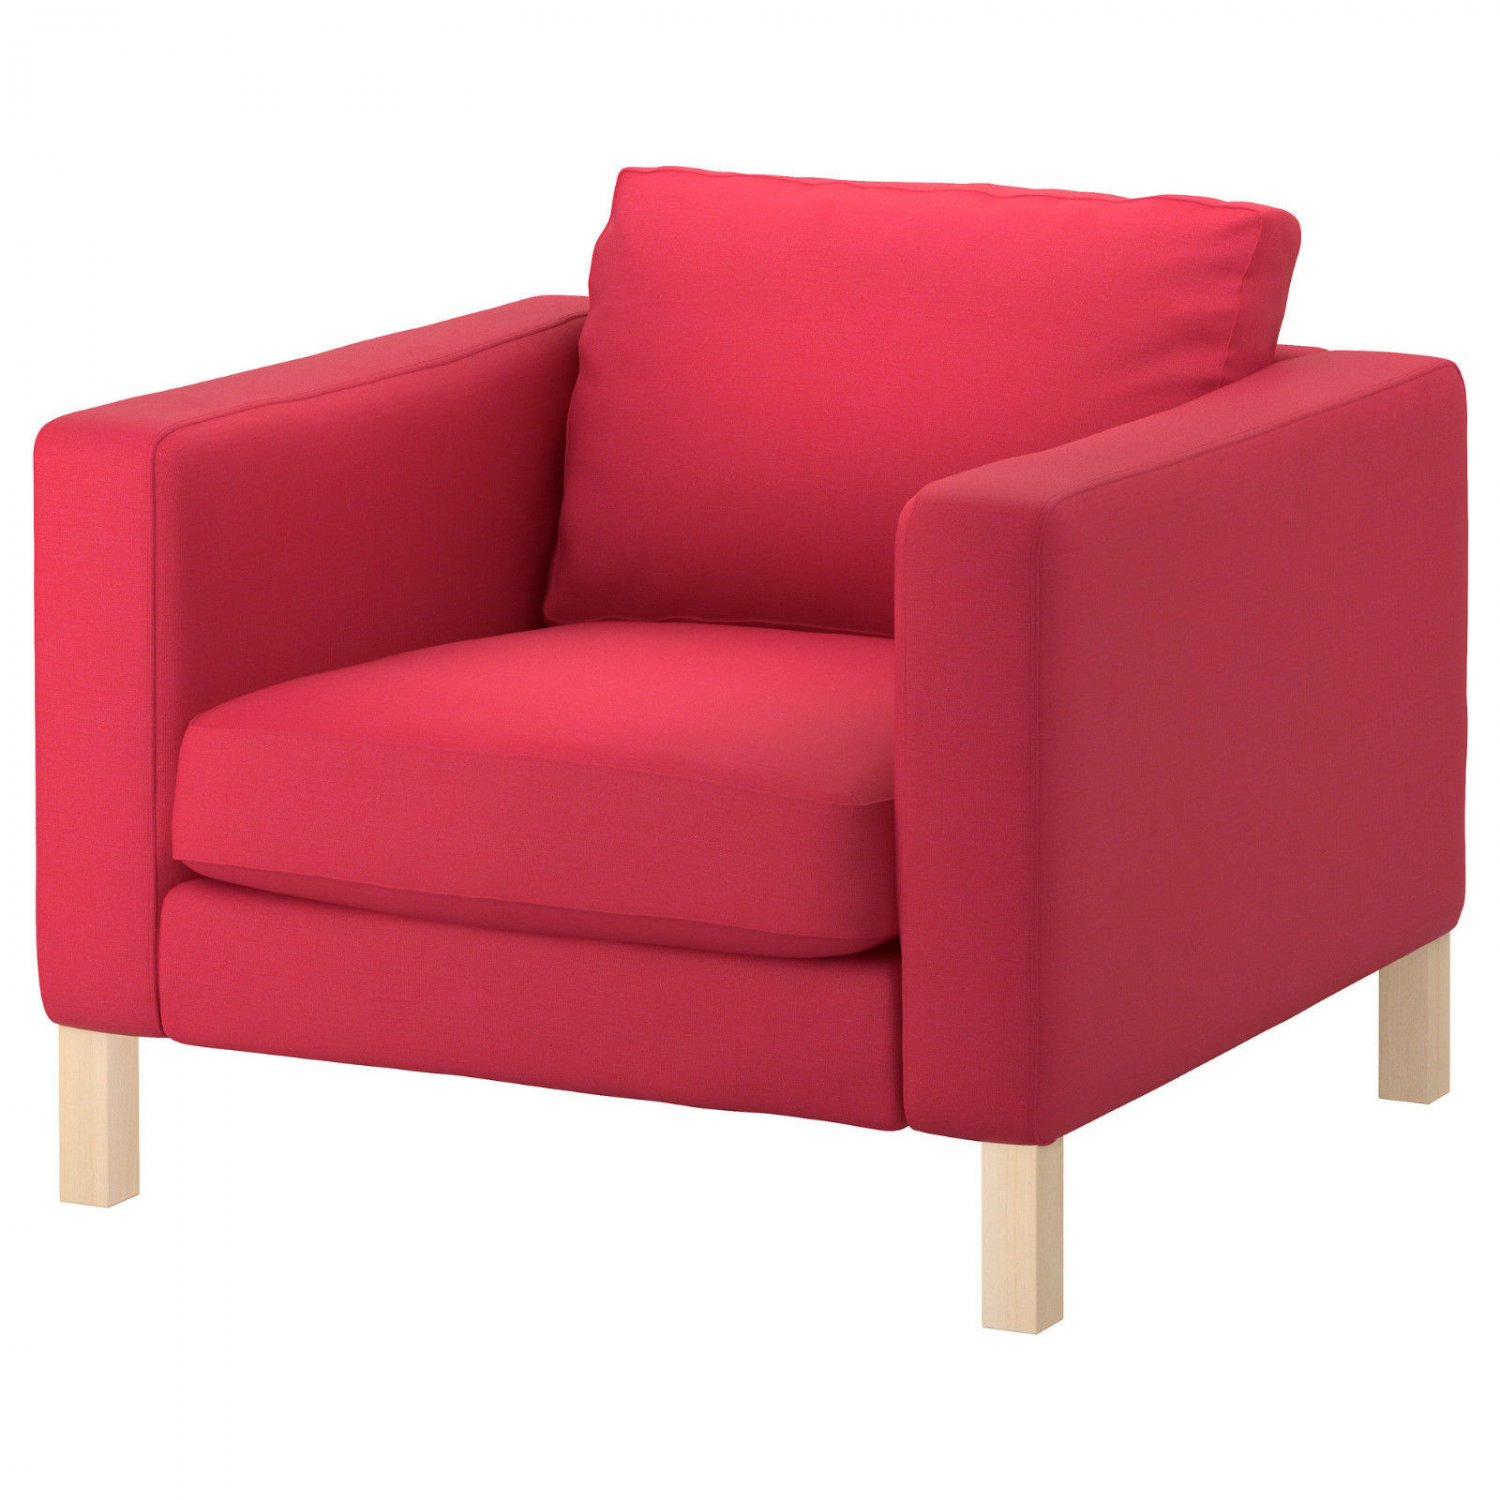 Ikea Karlstad Armchair Cover In Sivik Pink Red 702 031 41